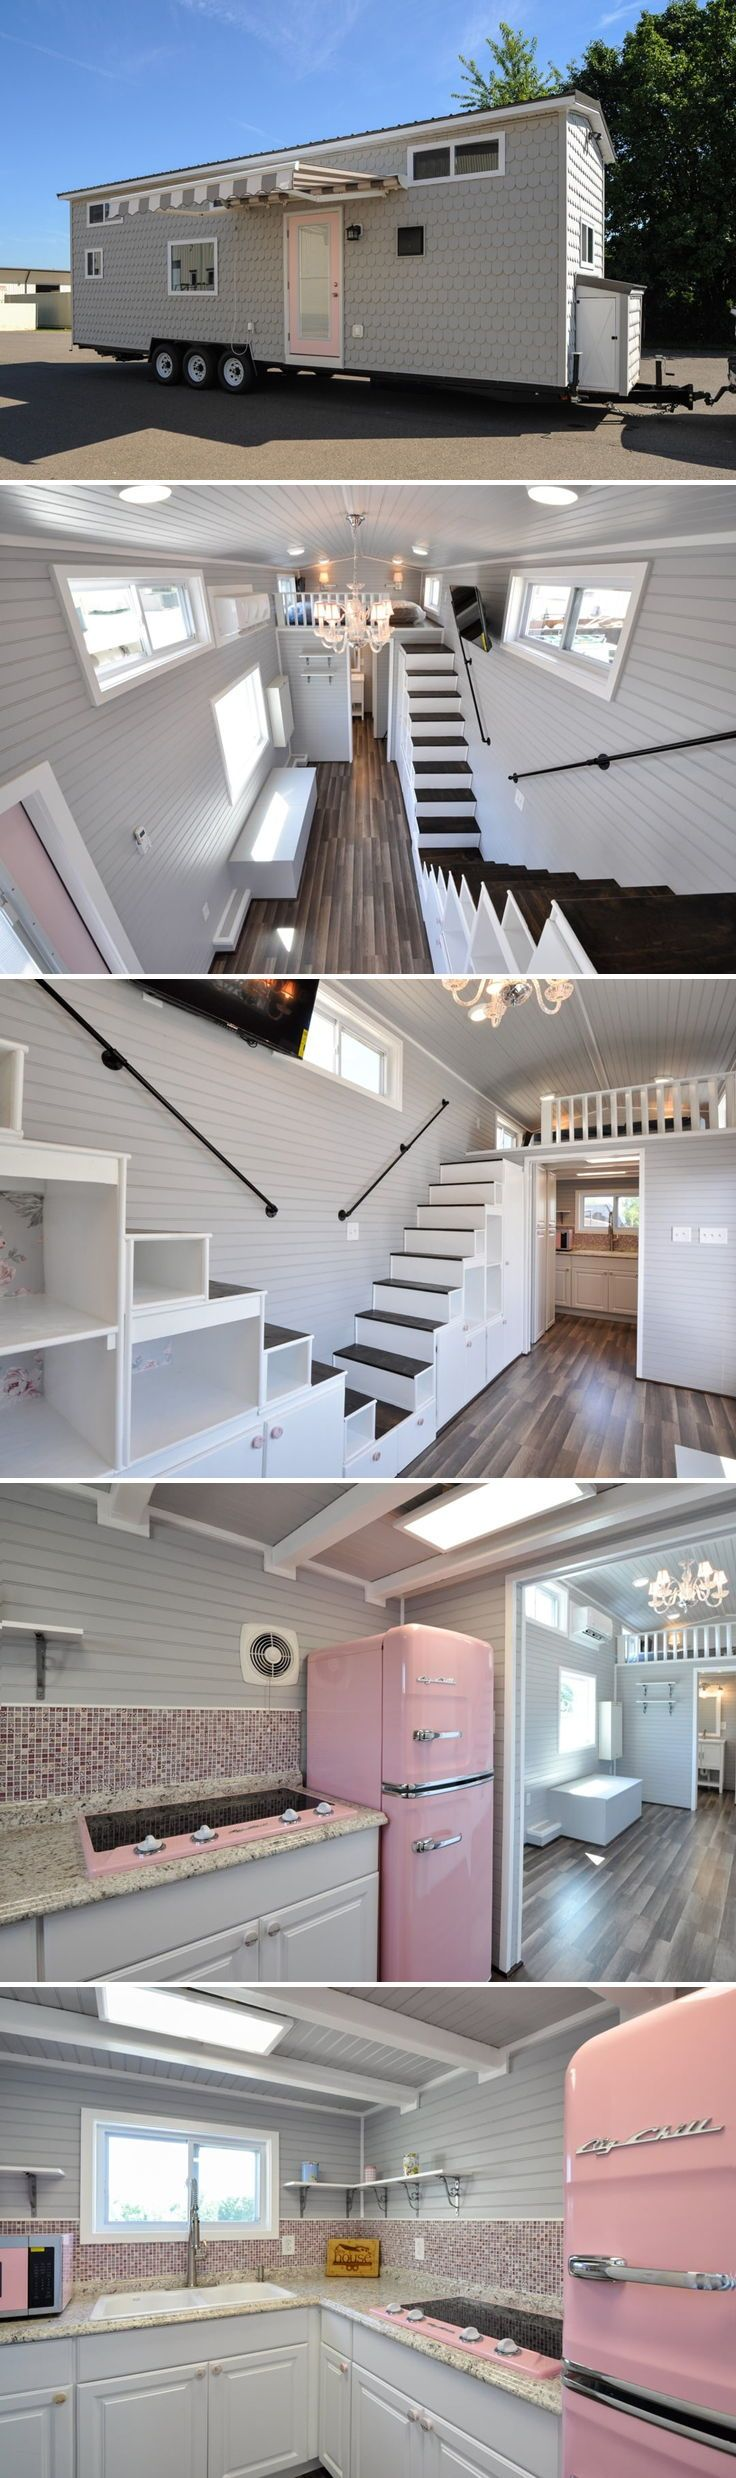 Getaway by Tiny House Building Company #tinyhome